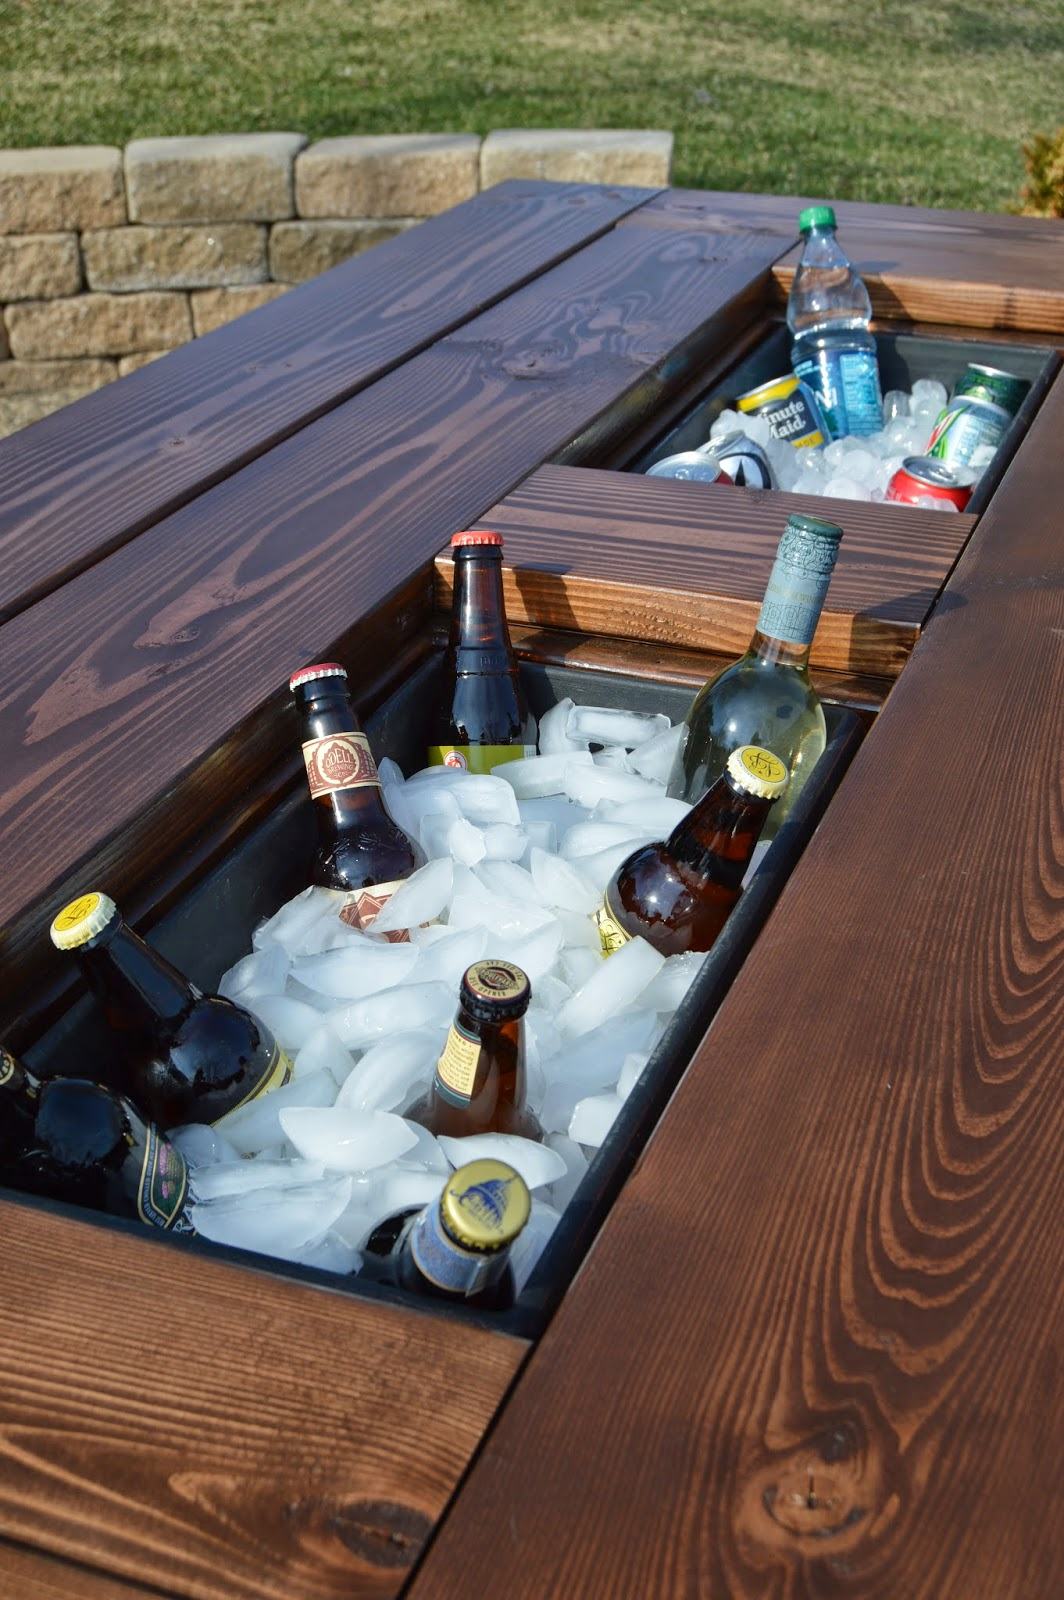 Patio Party Table With Built In Beer/Wine Ice Coolers